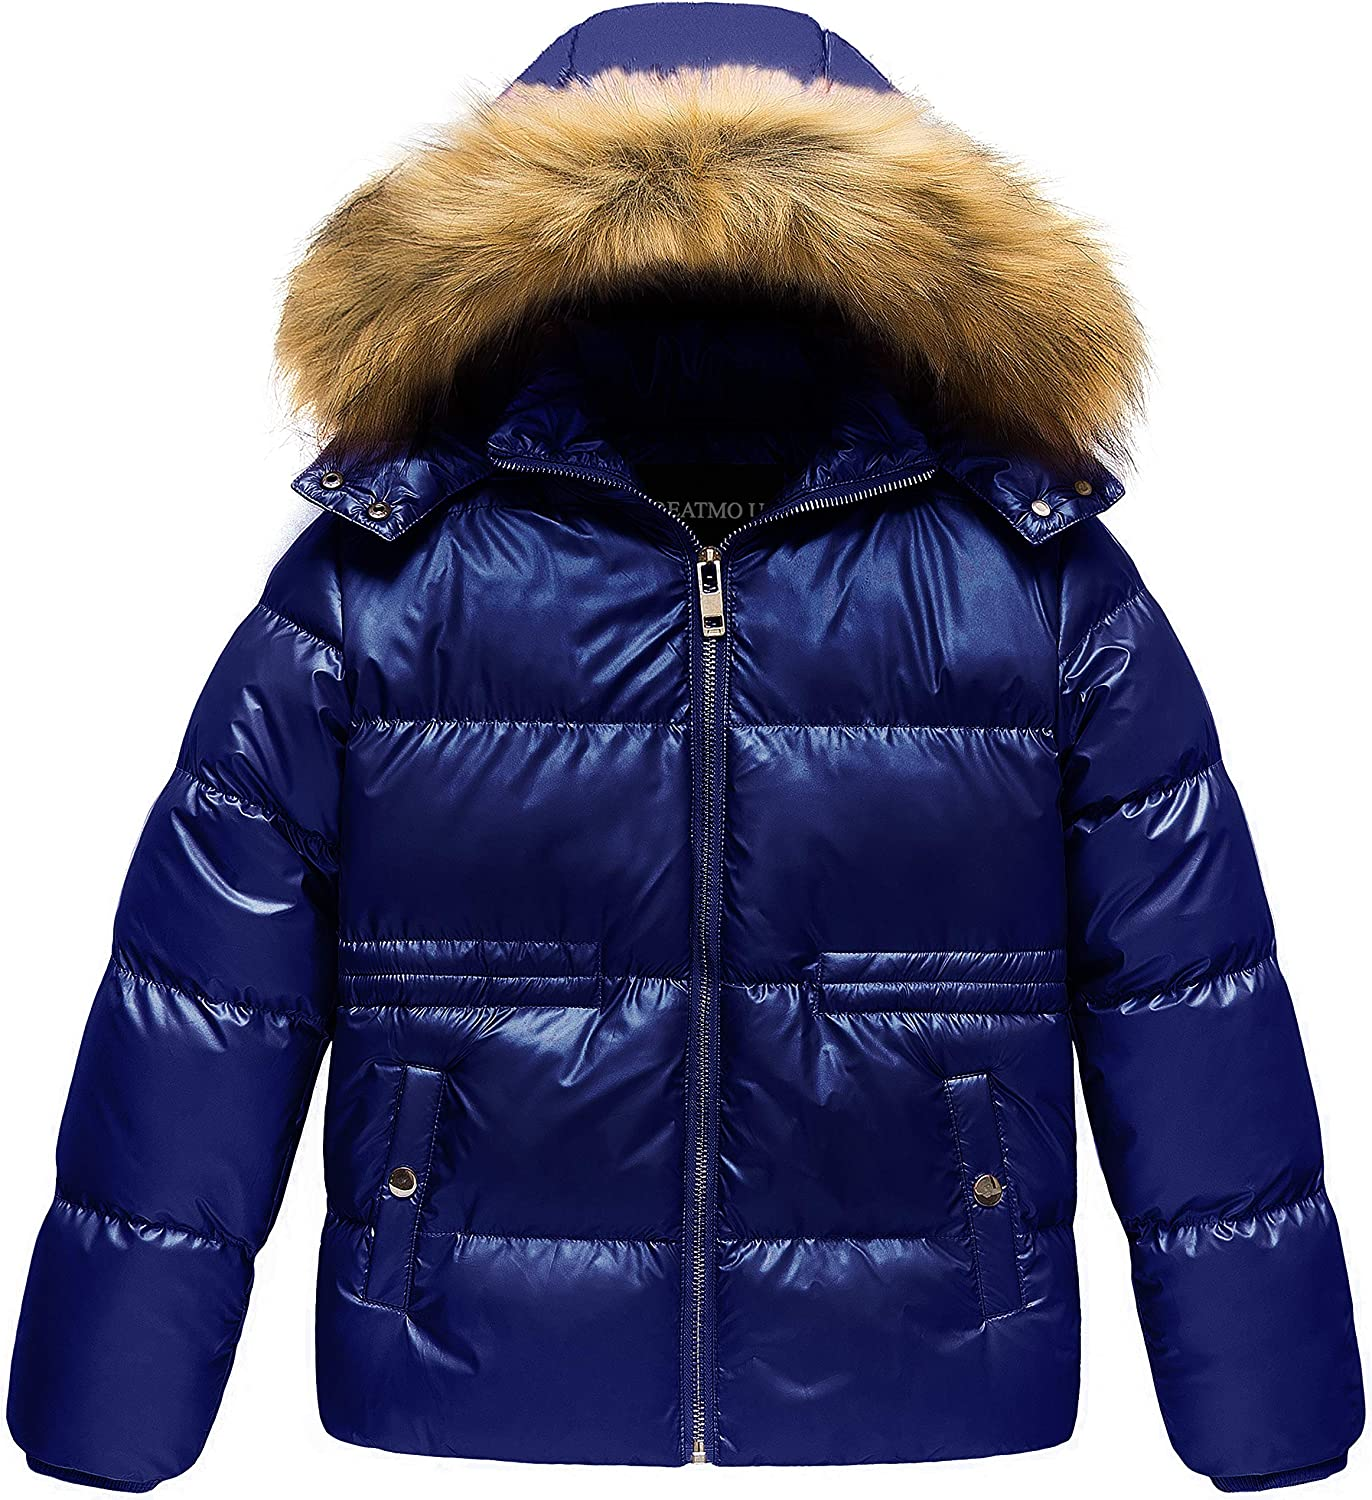 CREATMO US Girl's Kids Metallic Jacket Max 40% OFF Shiny In a popularity Fur with Detachable